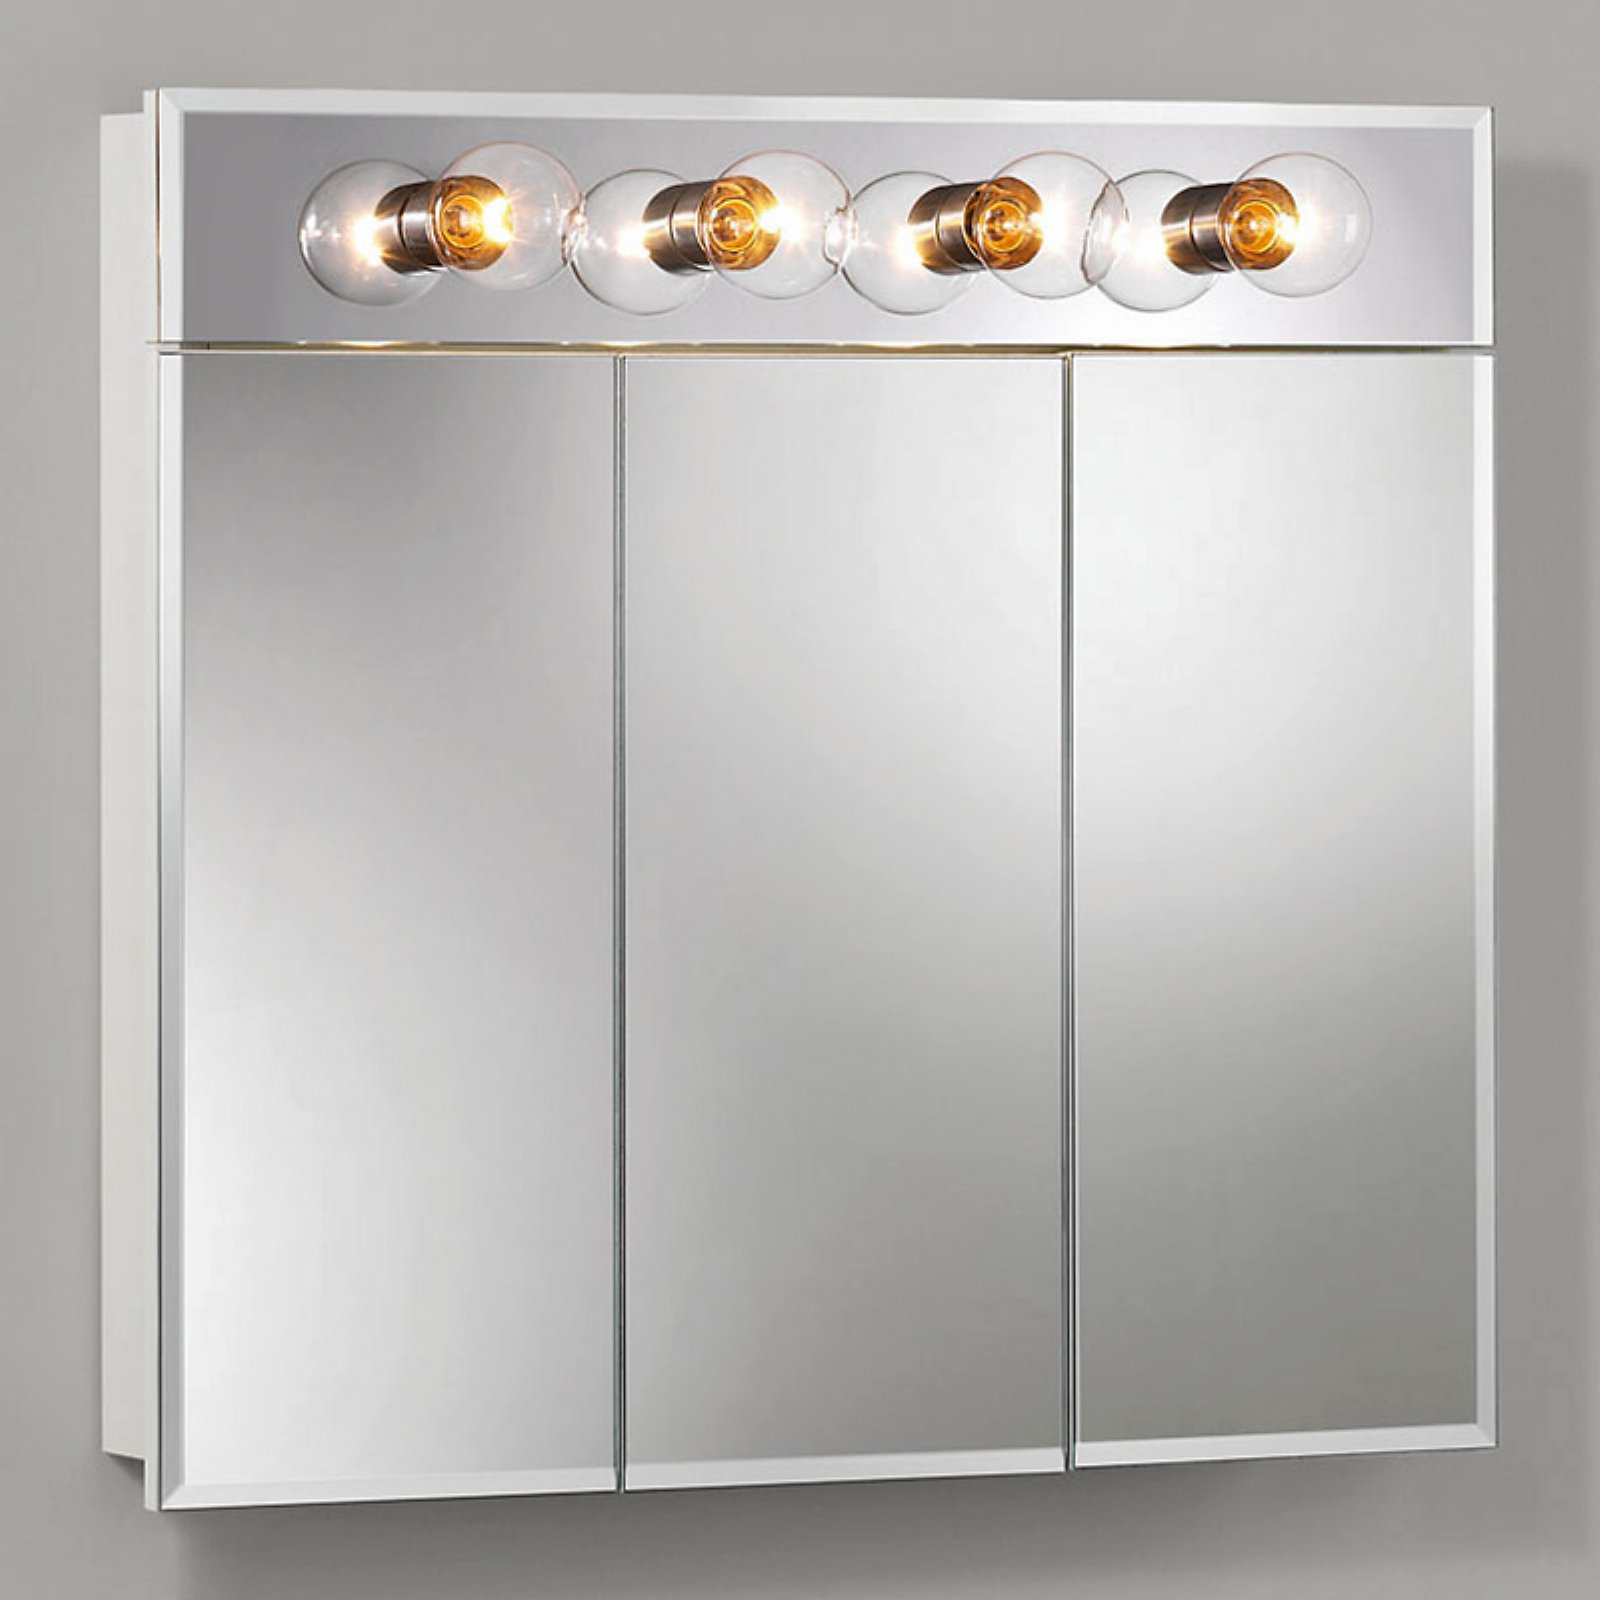 Jensen Medicine Cabinet Ashland Tri-View 4-Light 30W x 28H in. Surface Mount Medicine Cabinet 755435